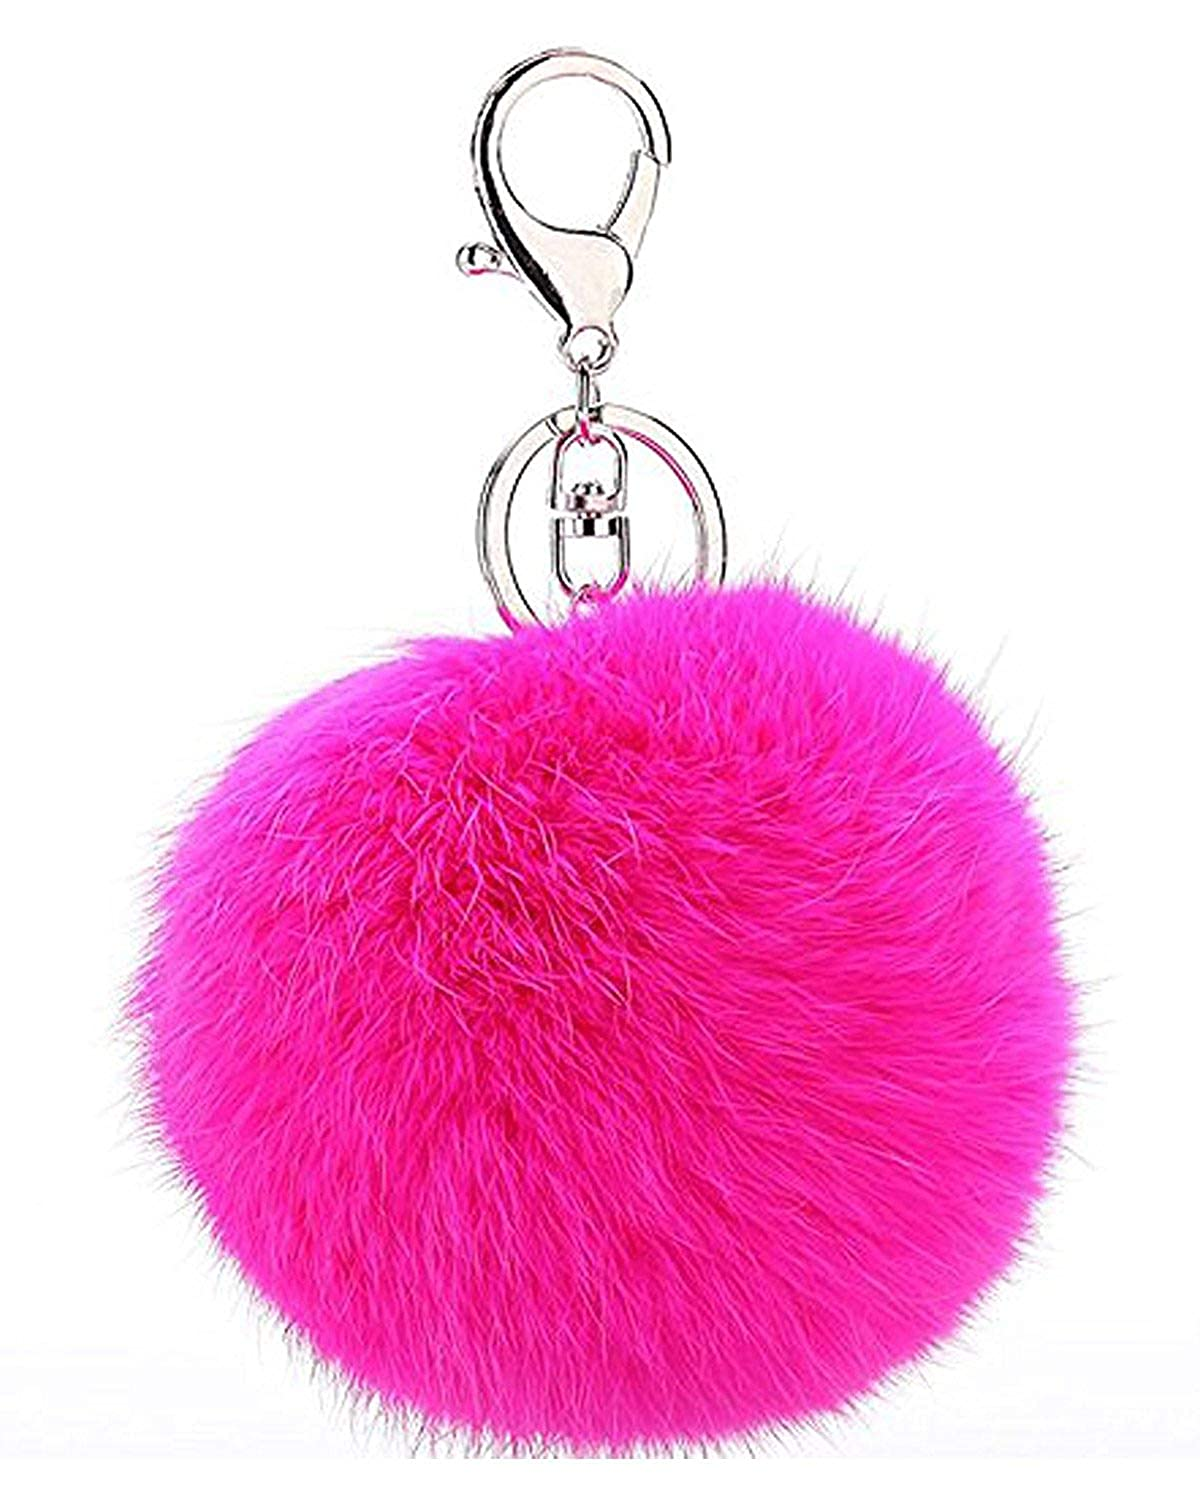 Buy Young   Forever Royal Closet Pink Fur Ball Keychain for Men and Women  (Silver) Online at Low Prices in India  467fb33de7